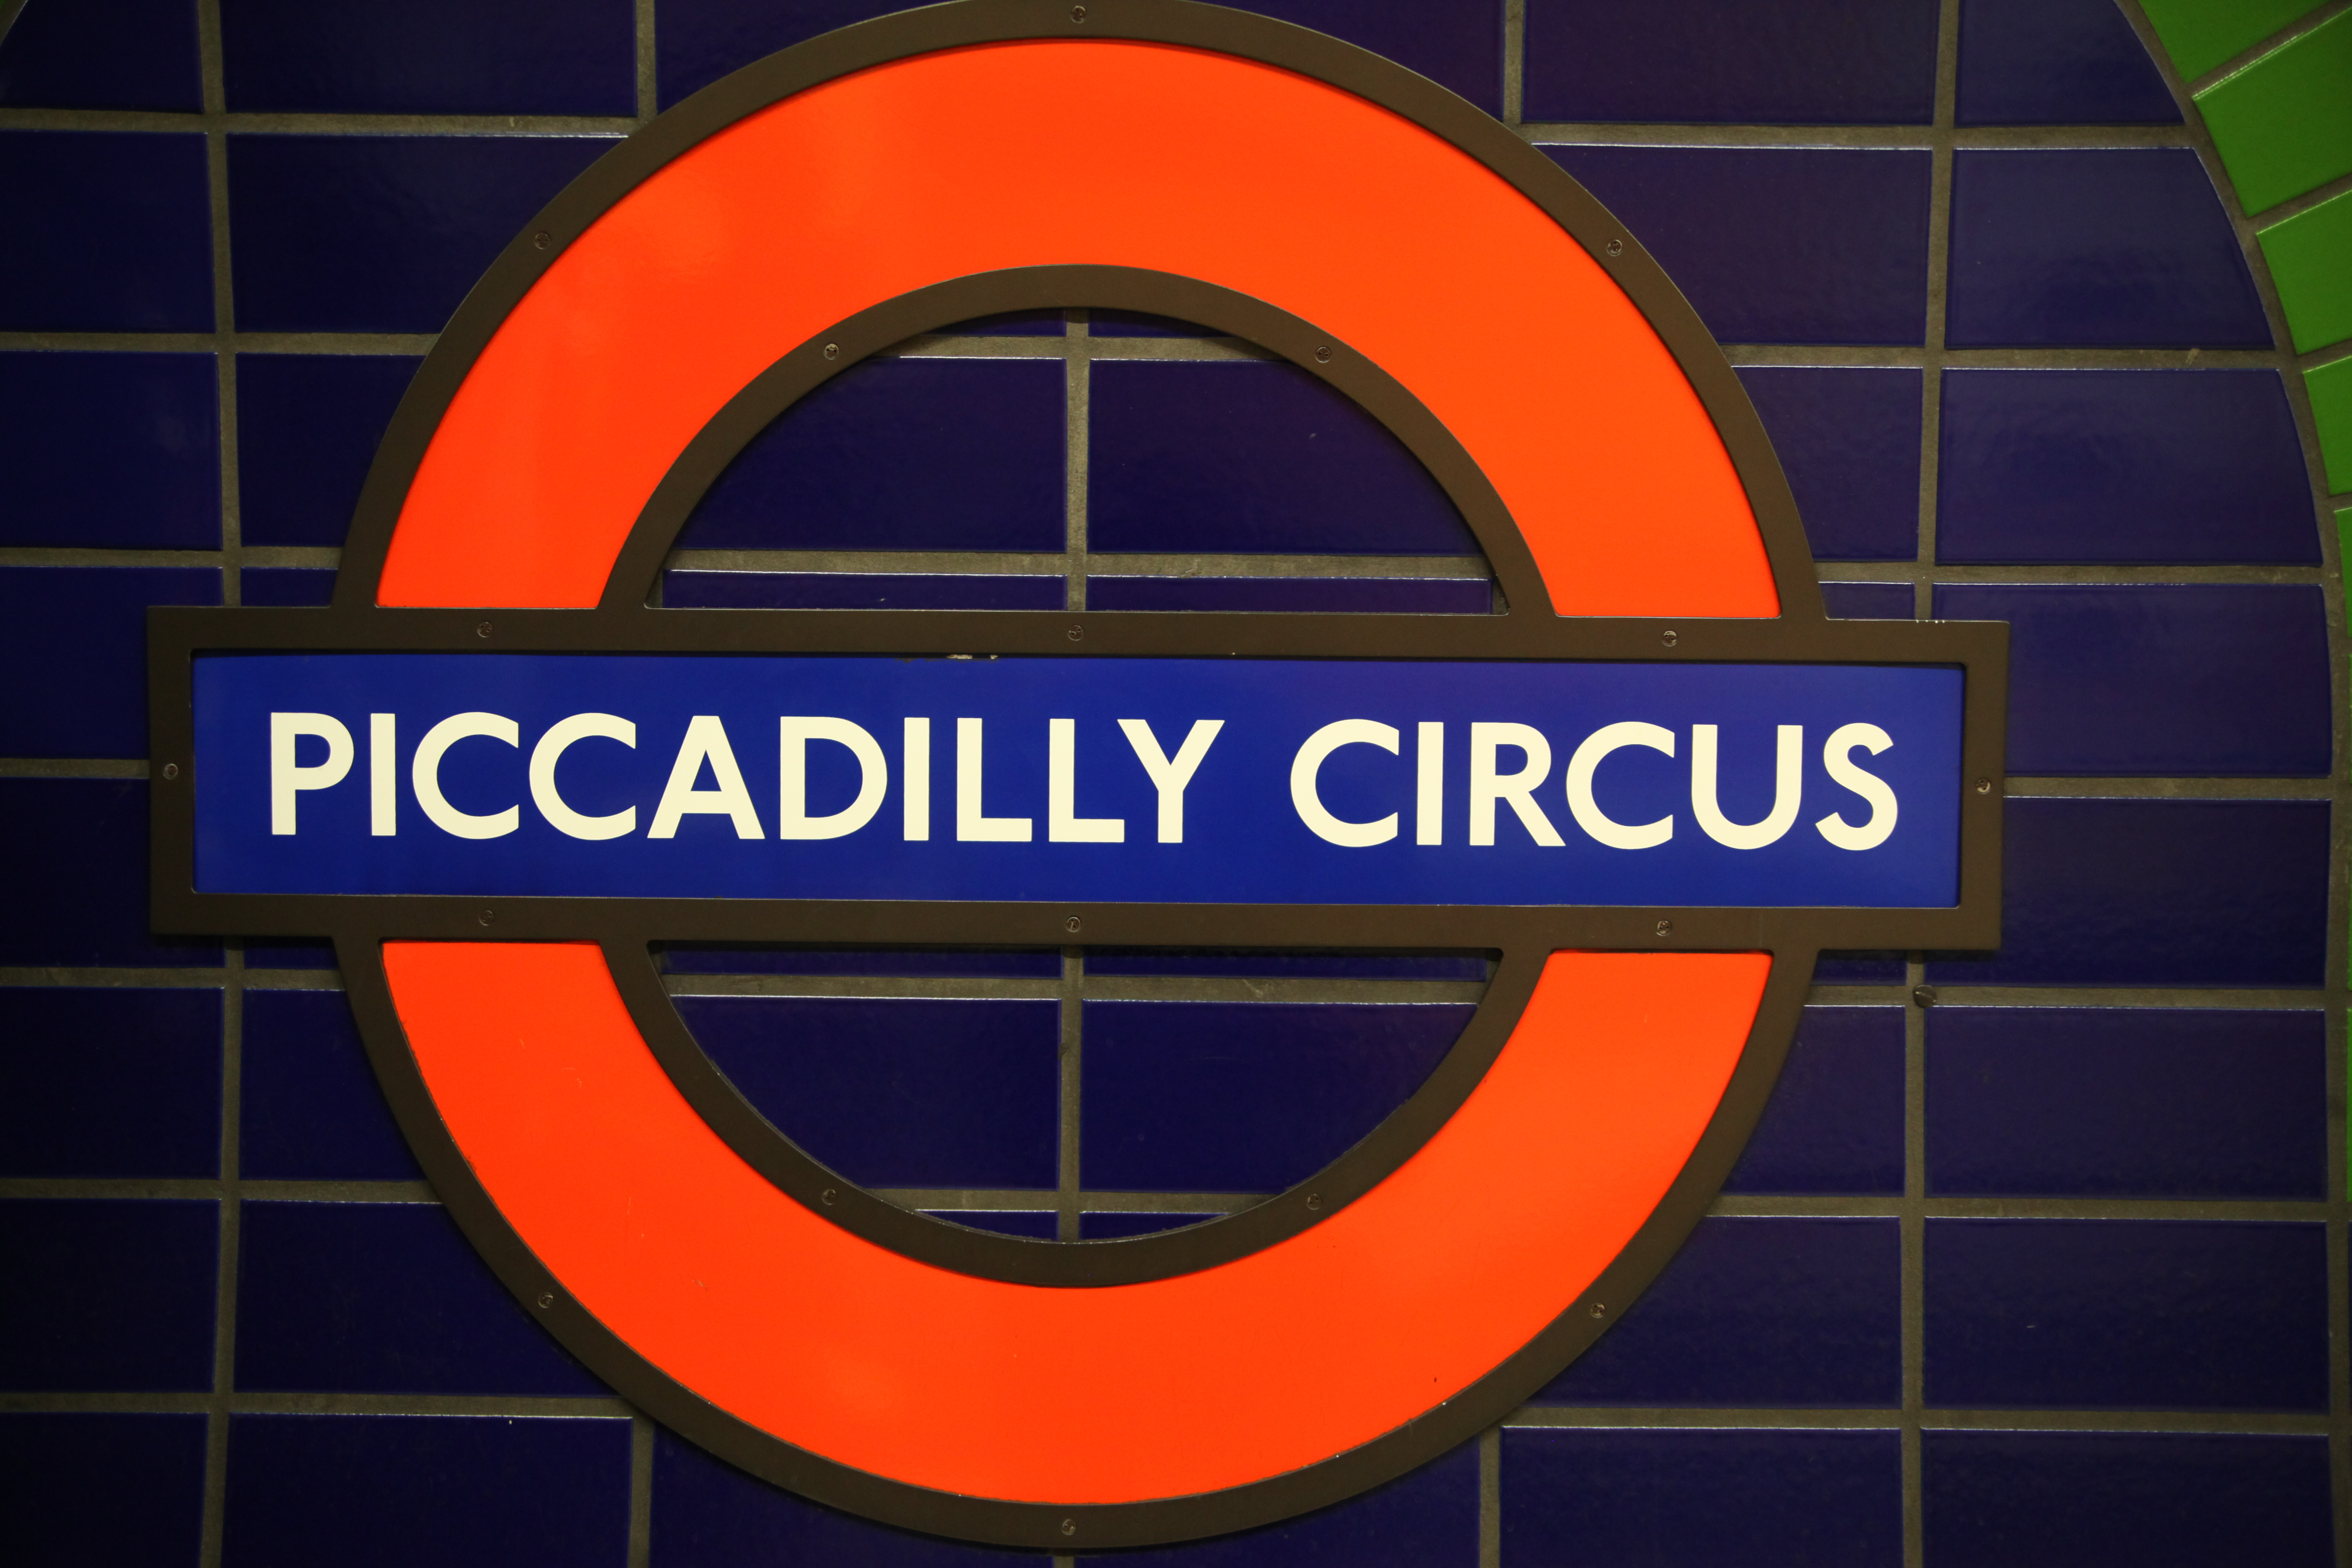 Filelogo Of London Tube Showing Piccadilly Circus Stationg